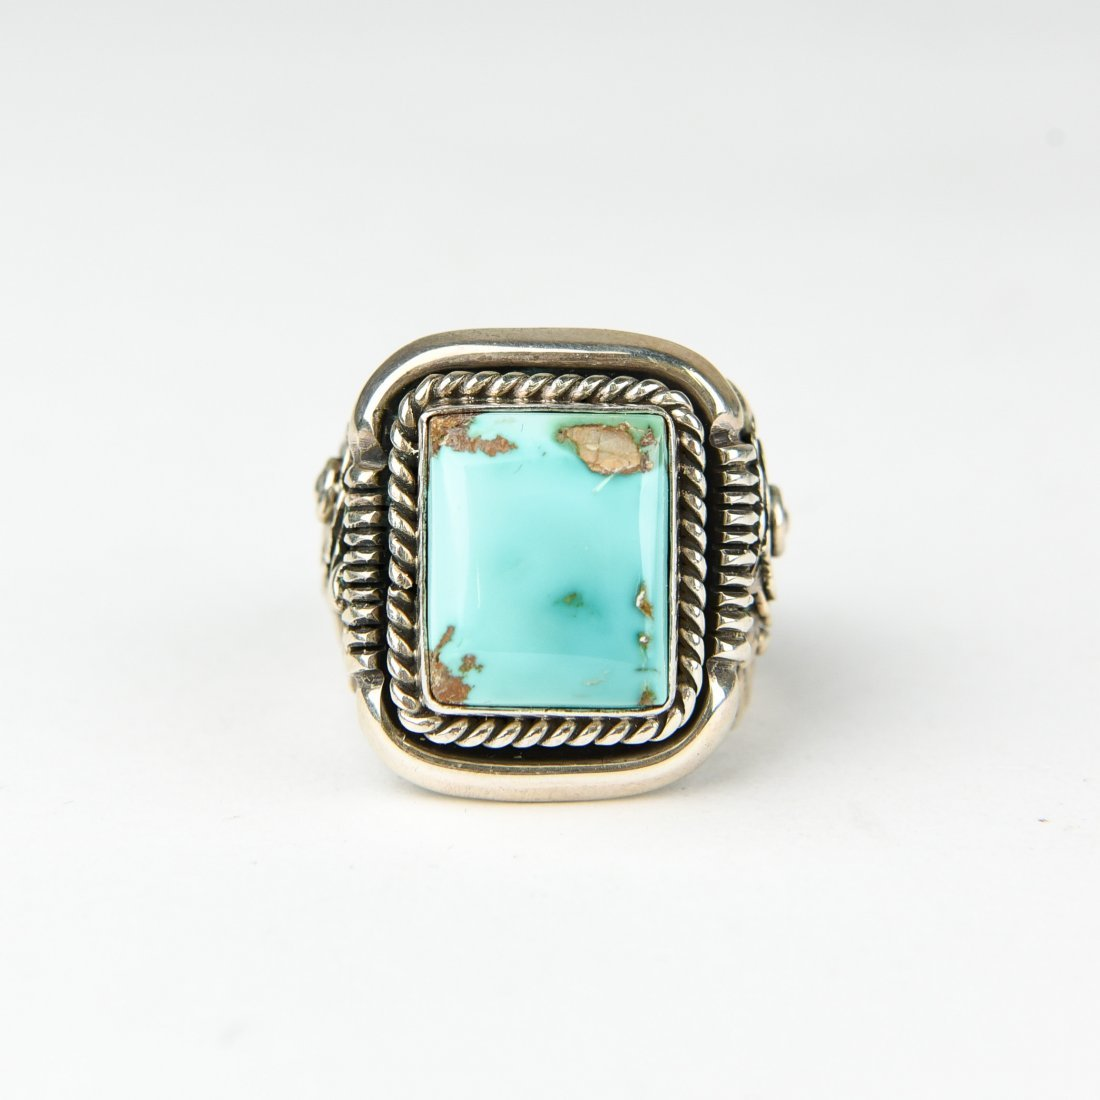 BEGAY STERLING AND TURQUOISE RING